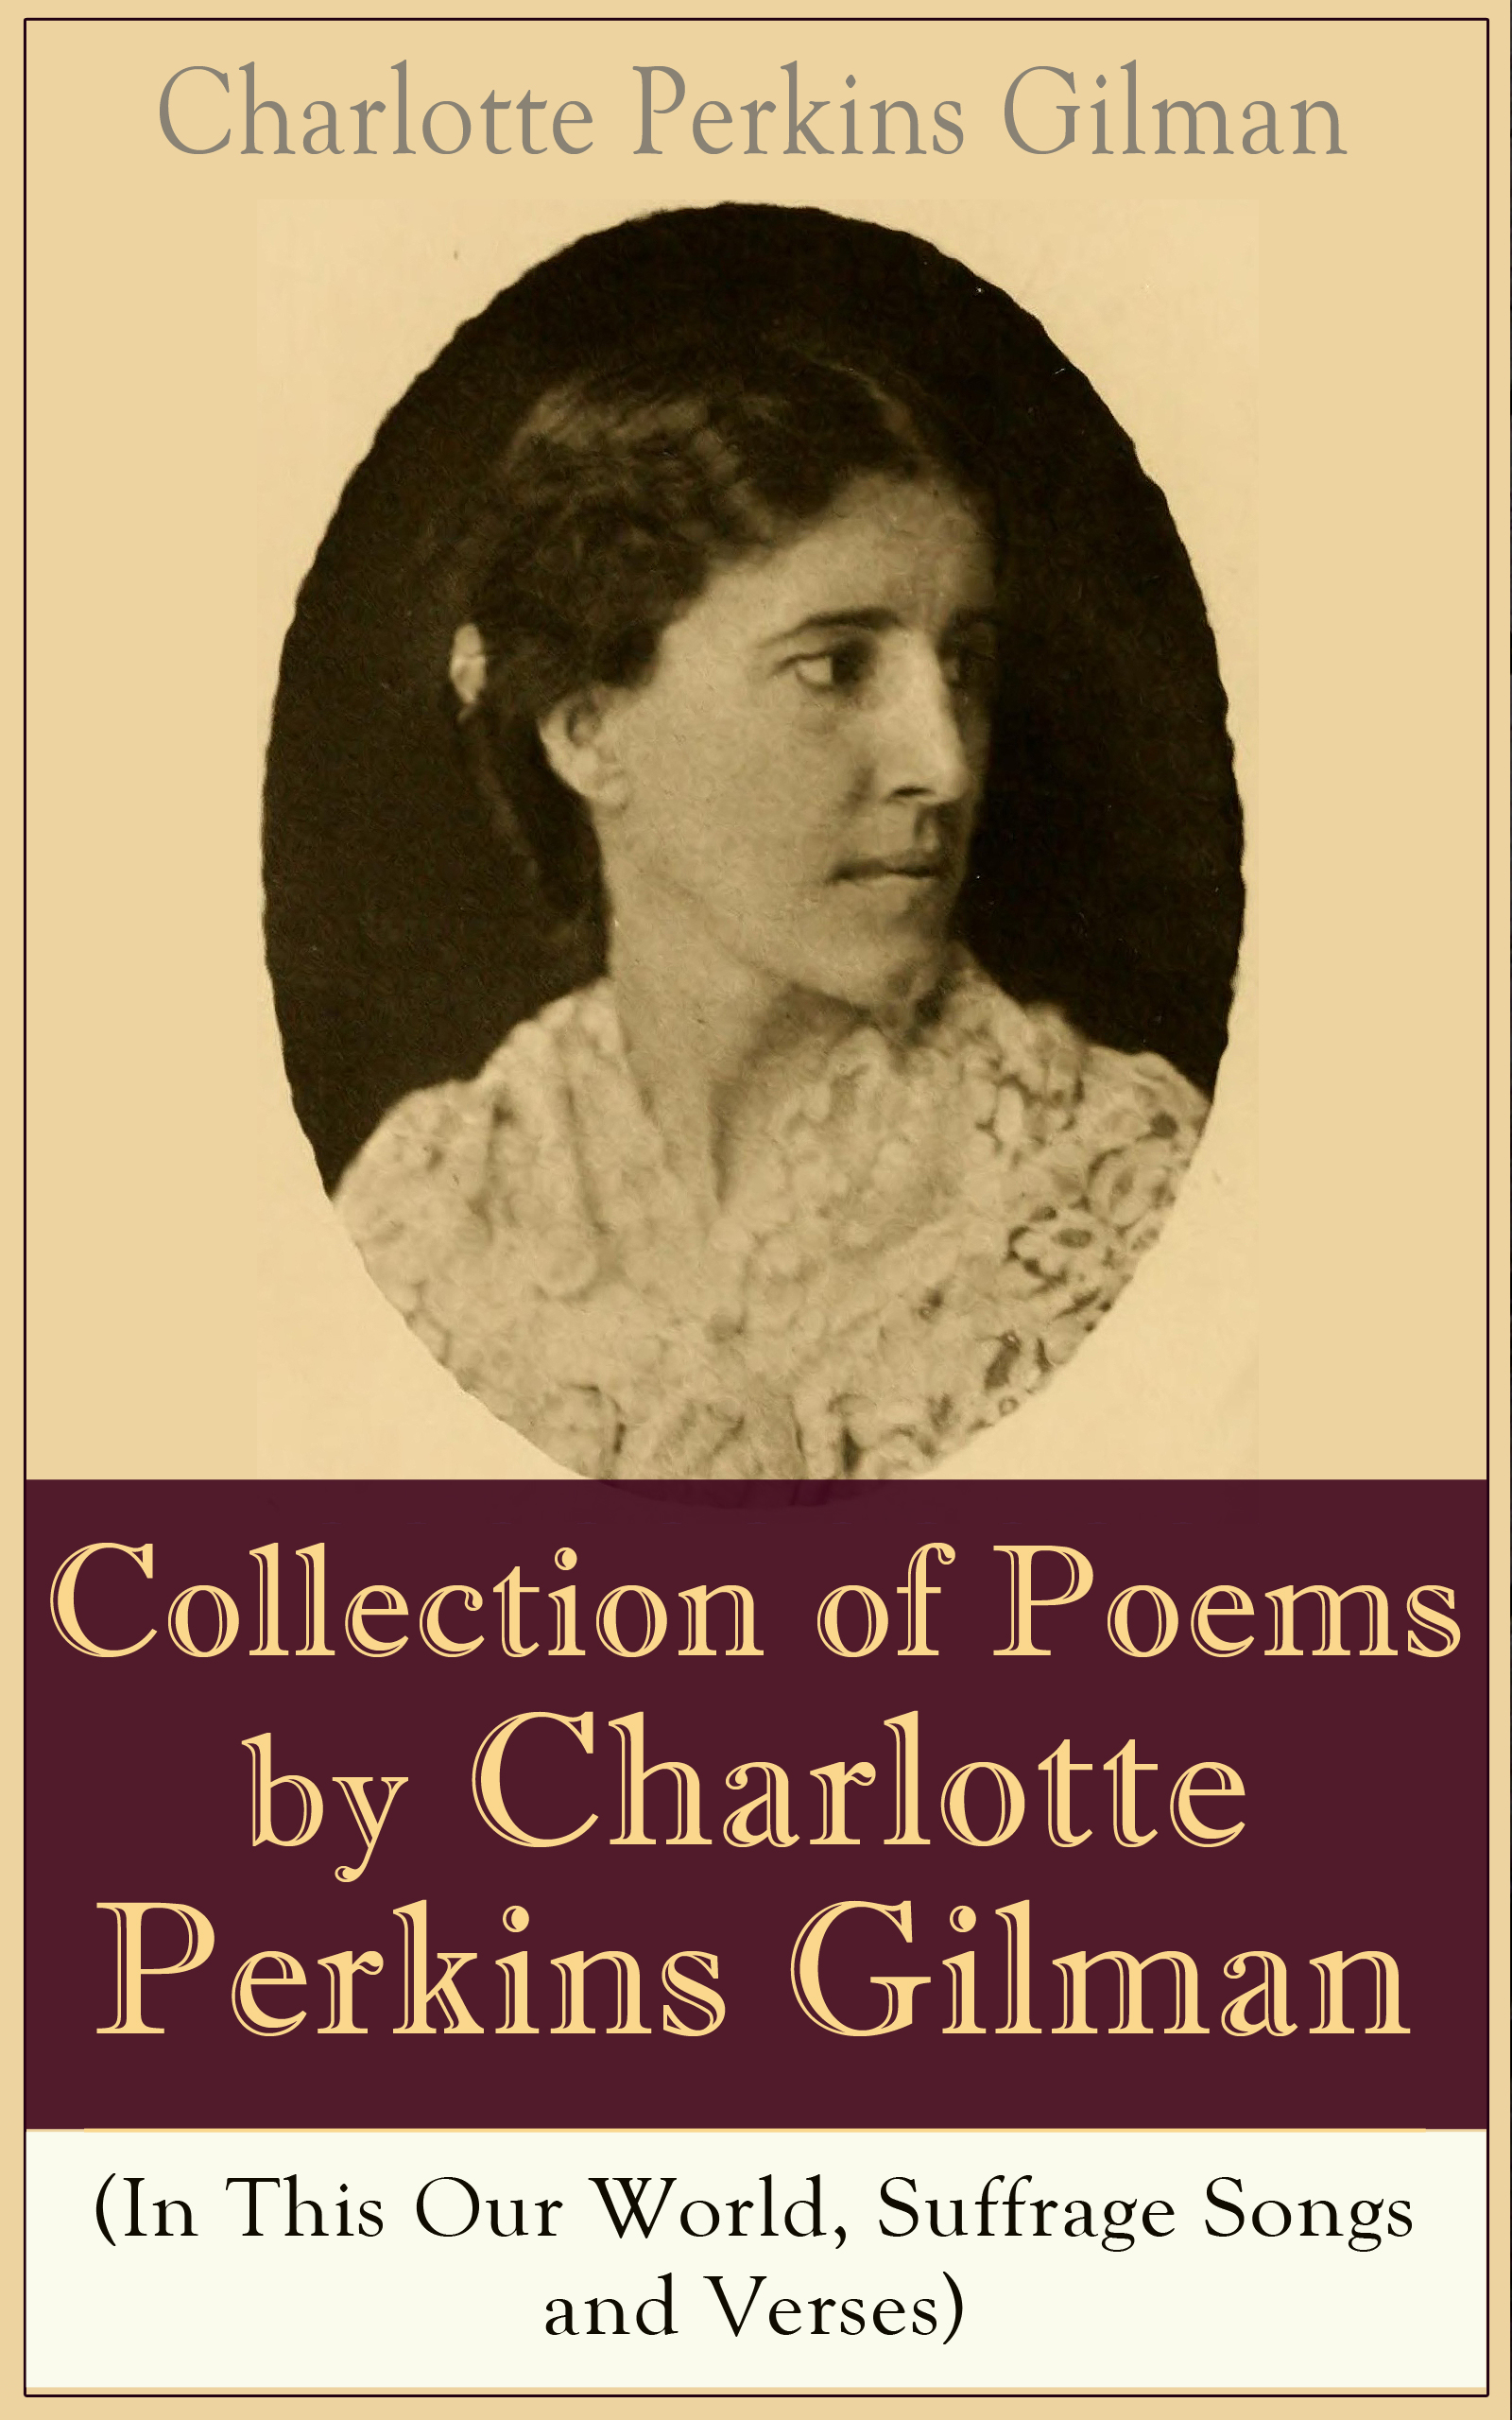 Charlotte Perkins Gilman A Collection of Poems by Charlotte Perkins Gilman (In This Our World, Suffrage Songs and Verses) w m thackeray christmas books mrs perkins s ball our street dr birch